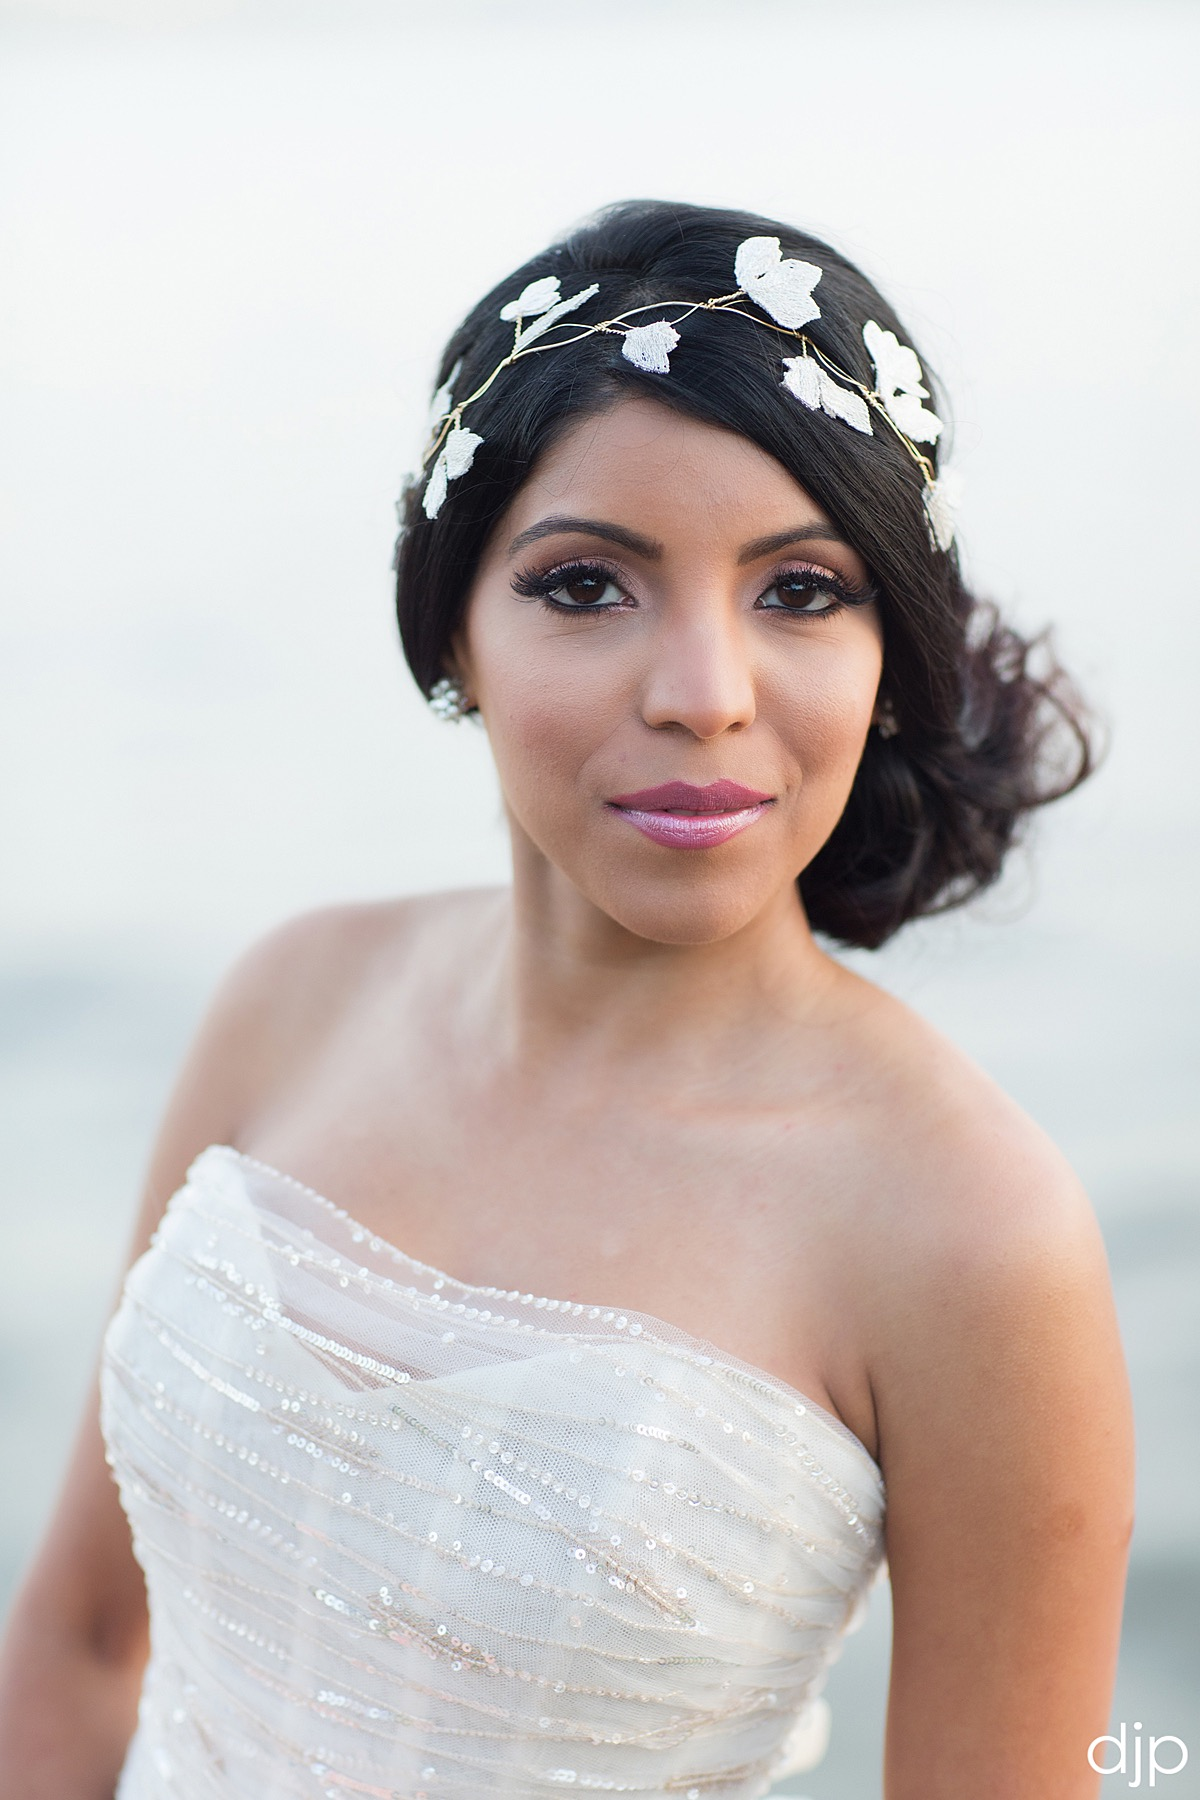 nyoka gregory beauty - weddings in houston